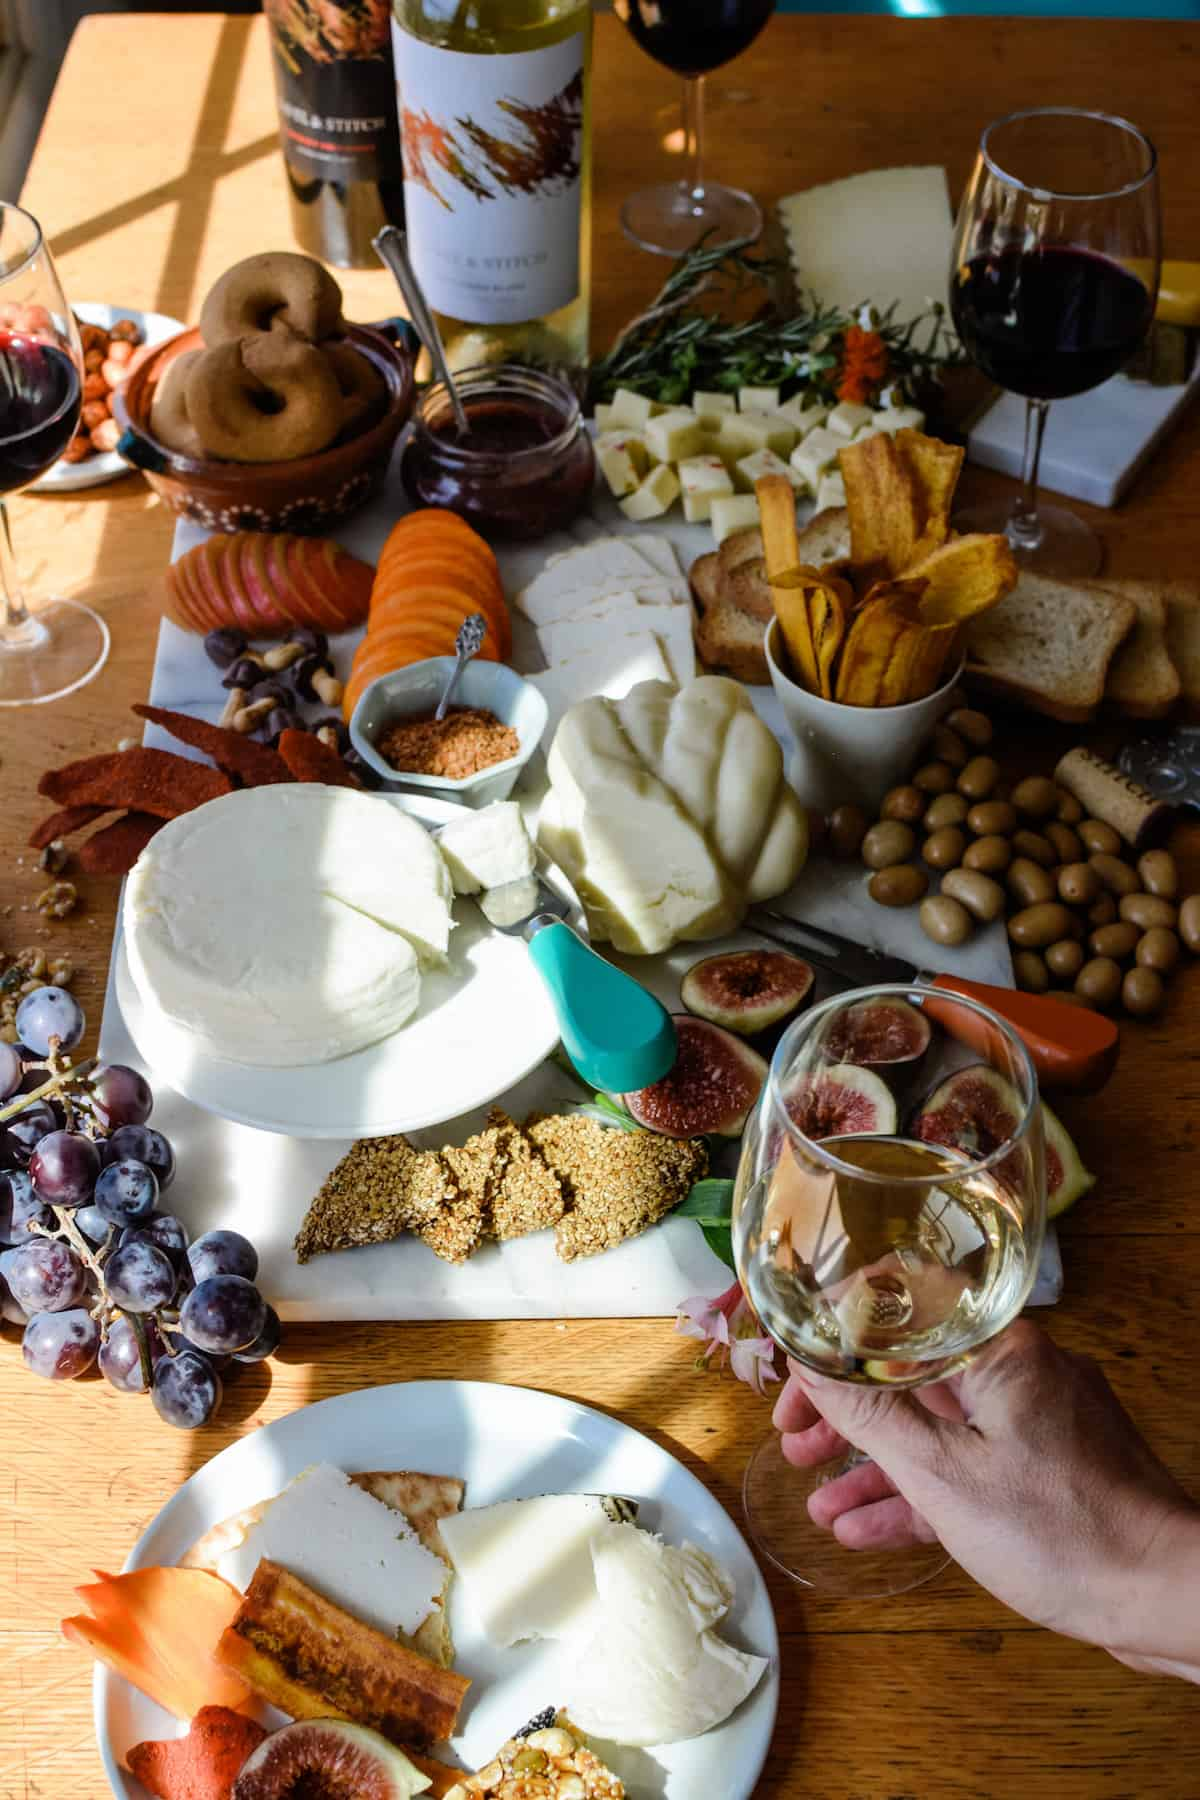 A wooden table filled with a Mexican Cheese Board filled with fruits, cheese, nuts, and glasses of wine plus bottles of wine around the table.